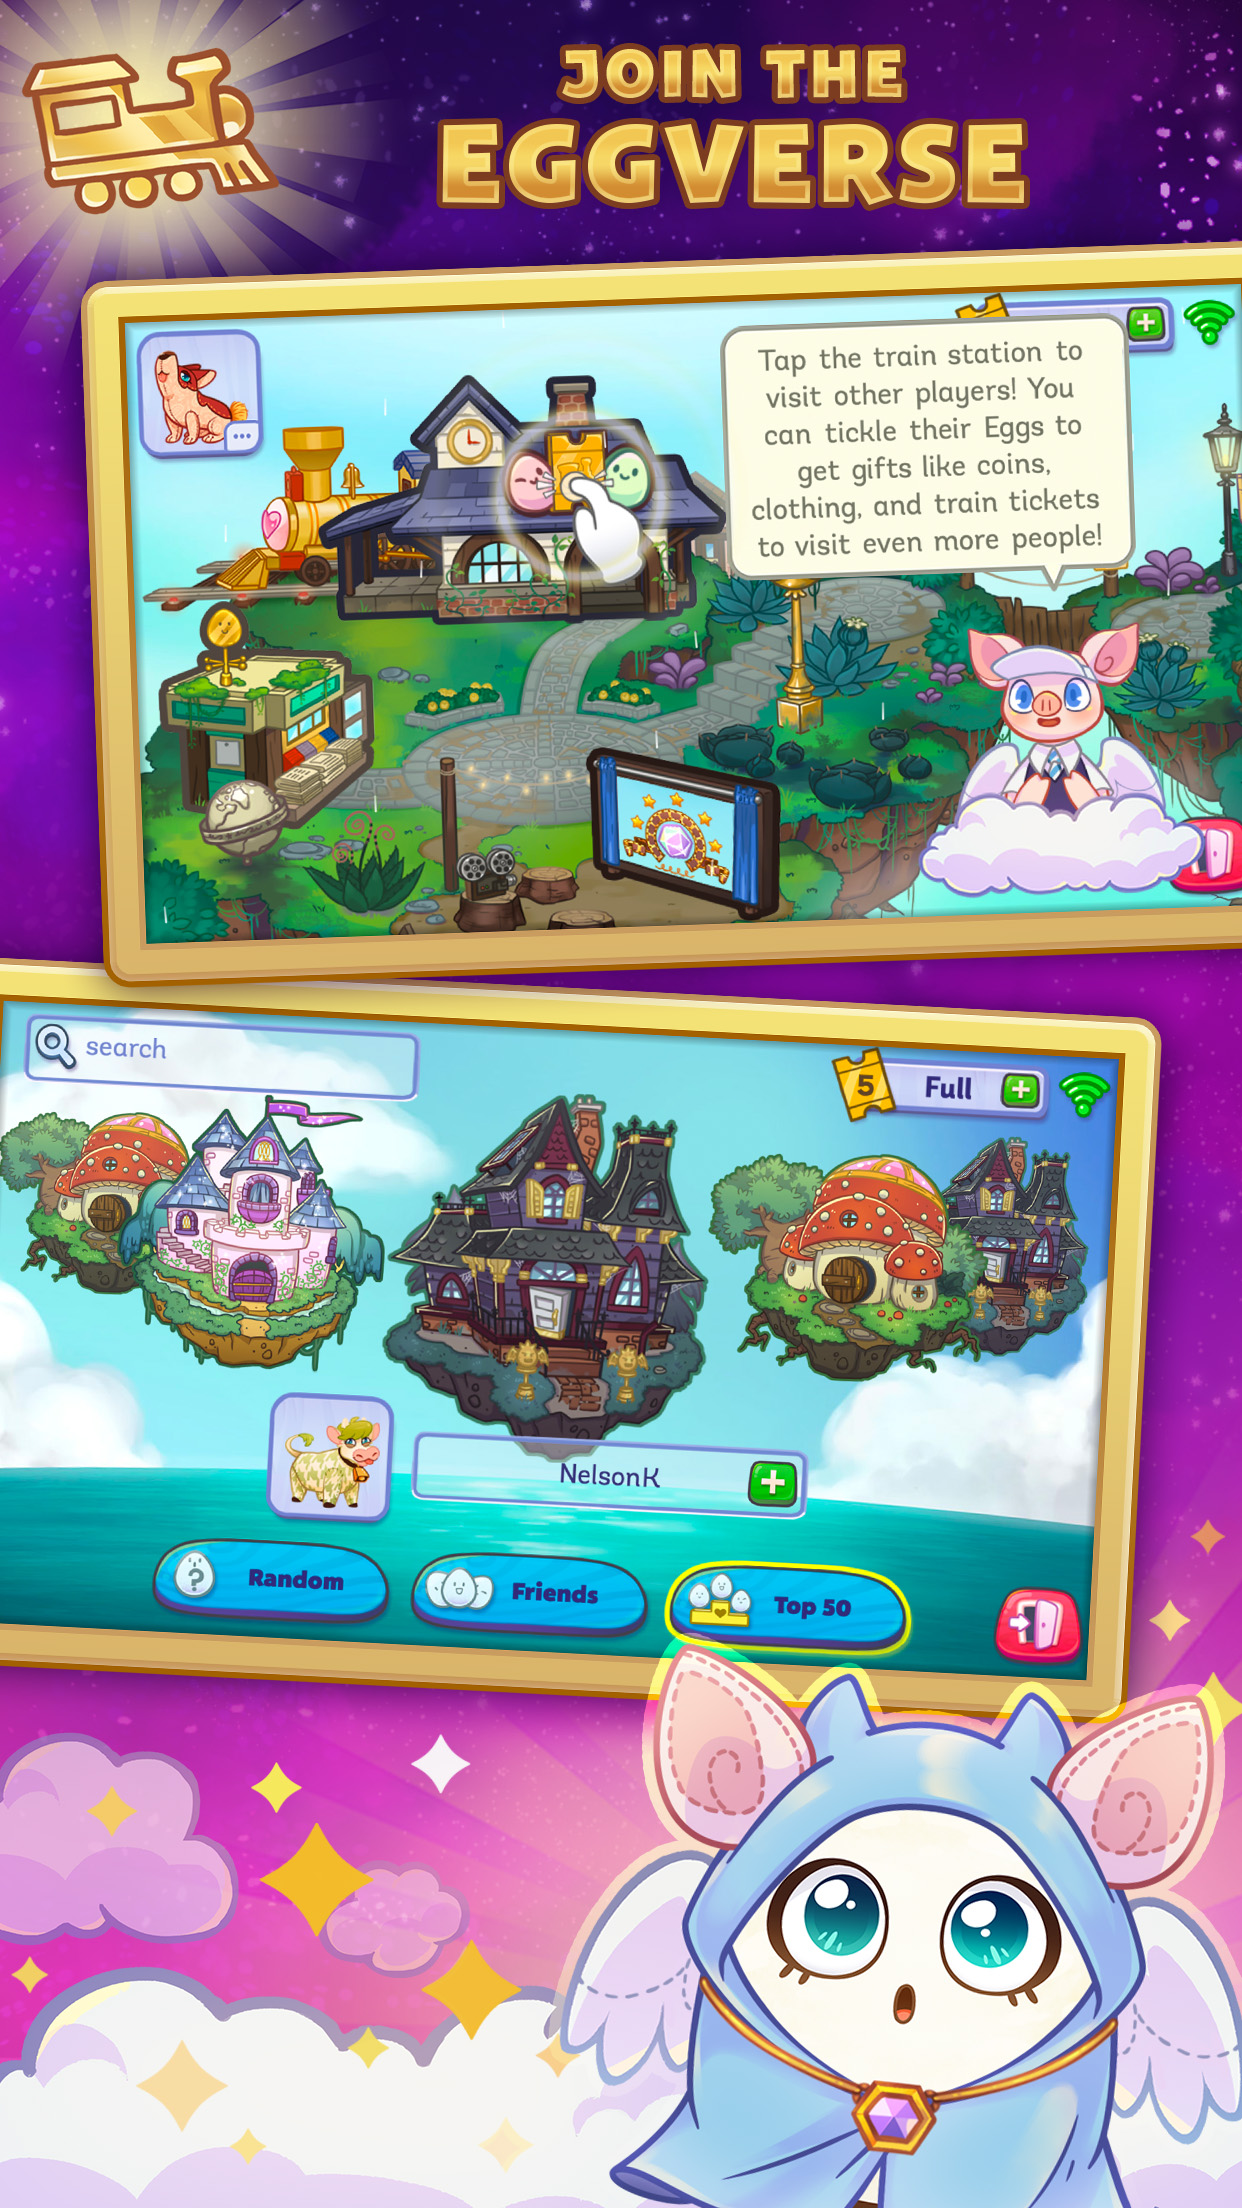 Egg! The Pet Game - Join the Eggverse